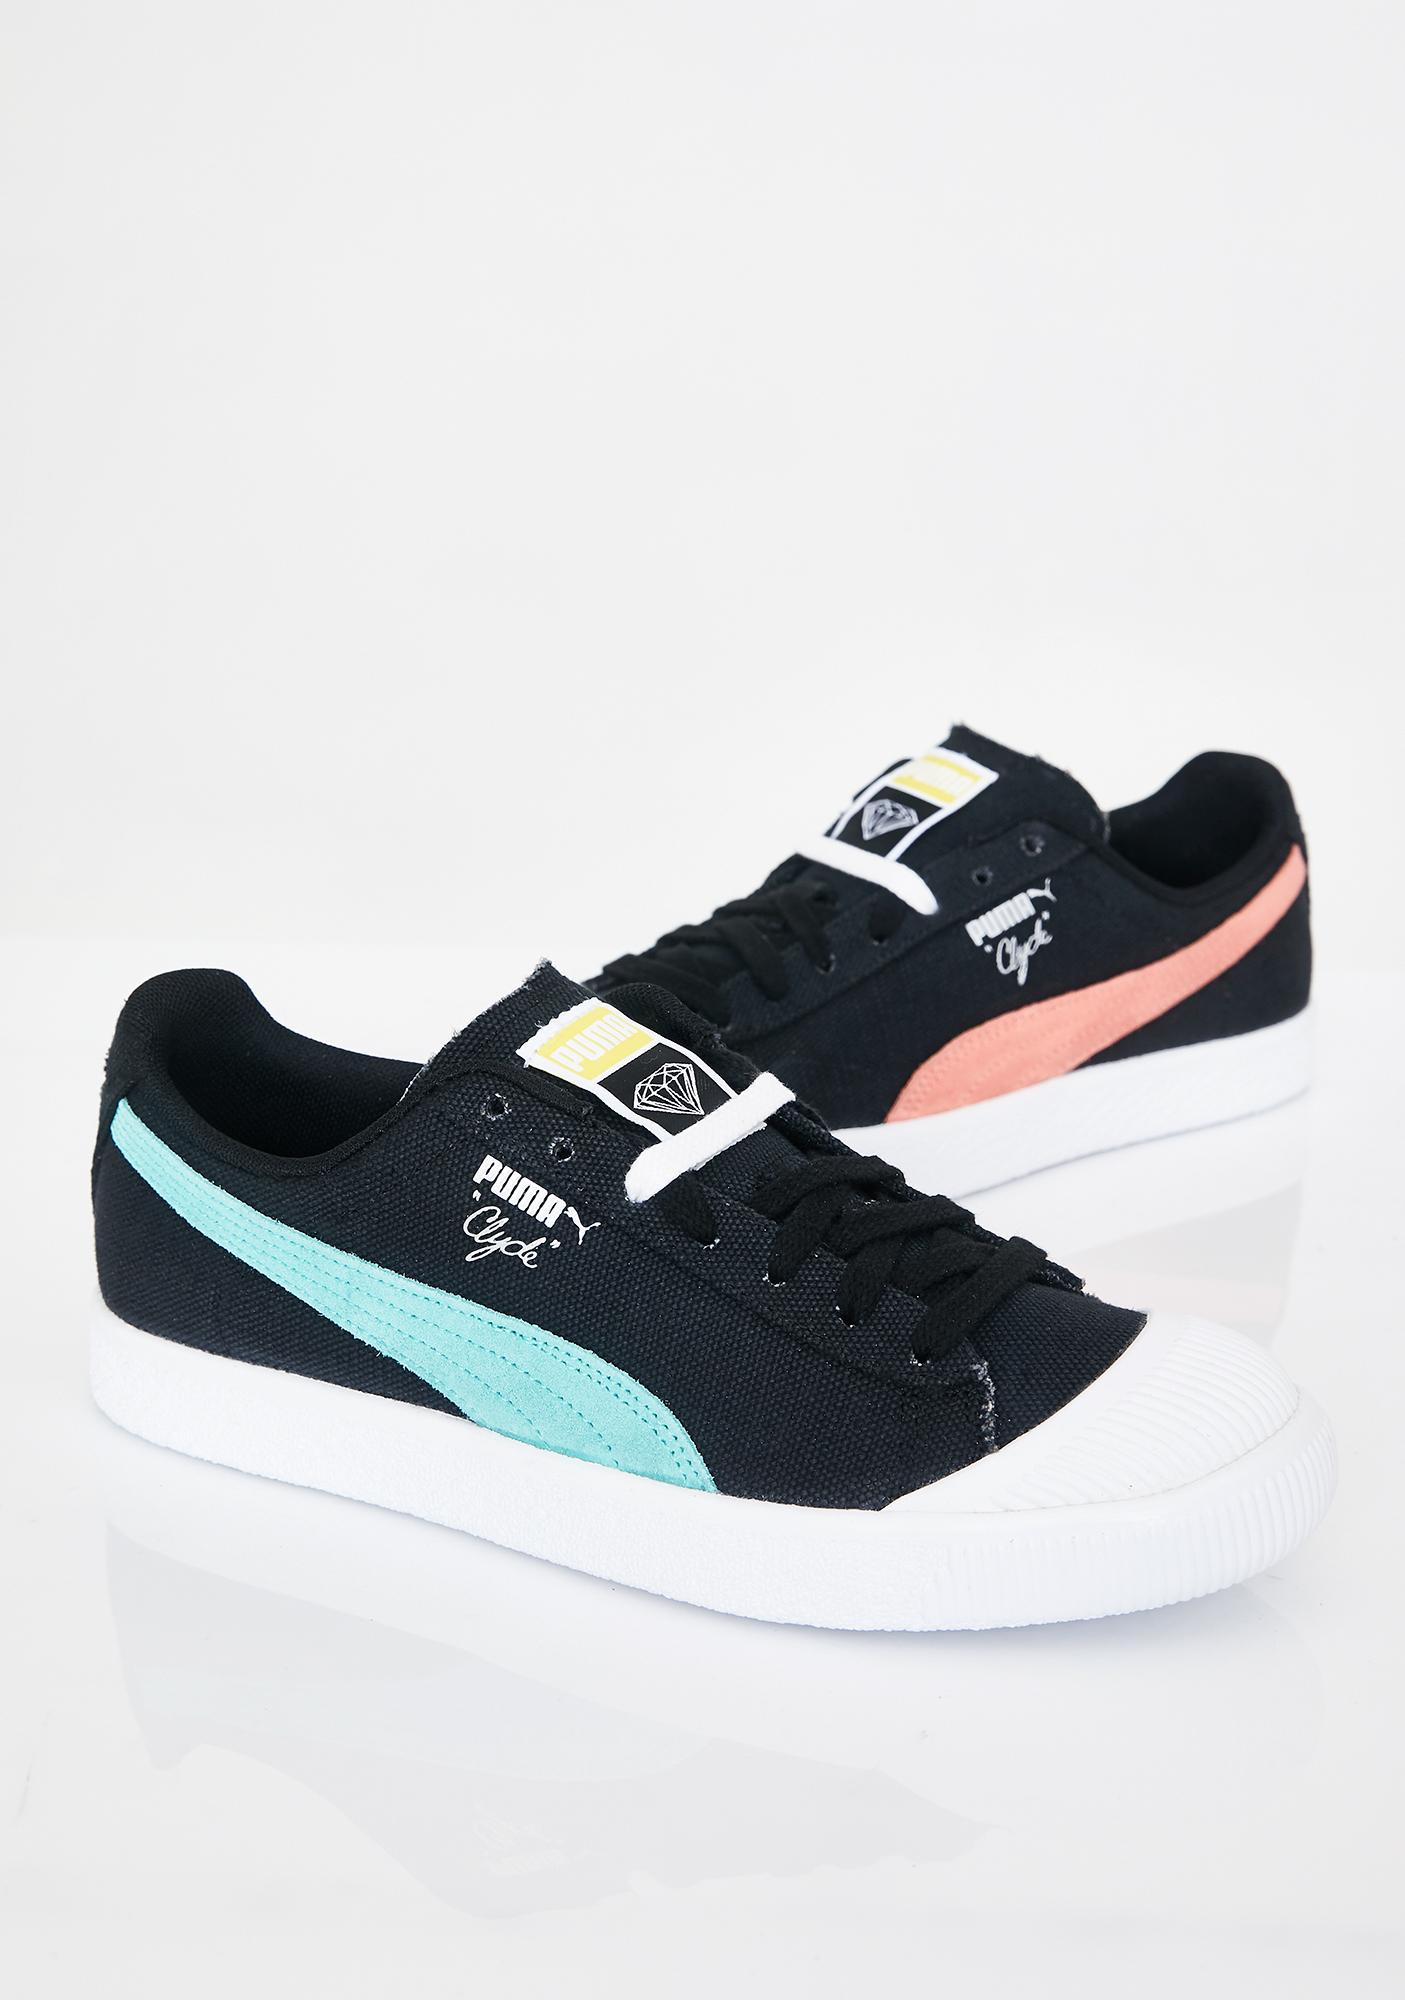 outlet store 76f80 b93d8 x Diamond Supply Co. Clyde Sneakers